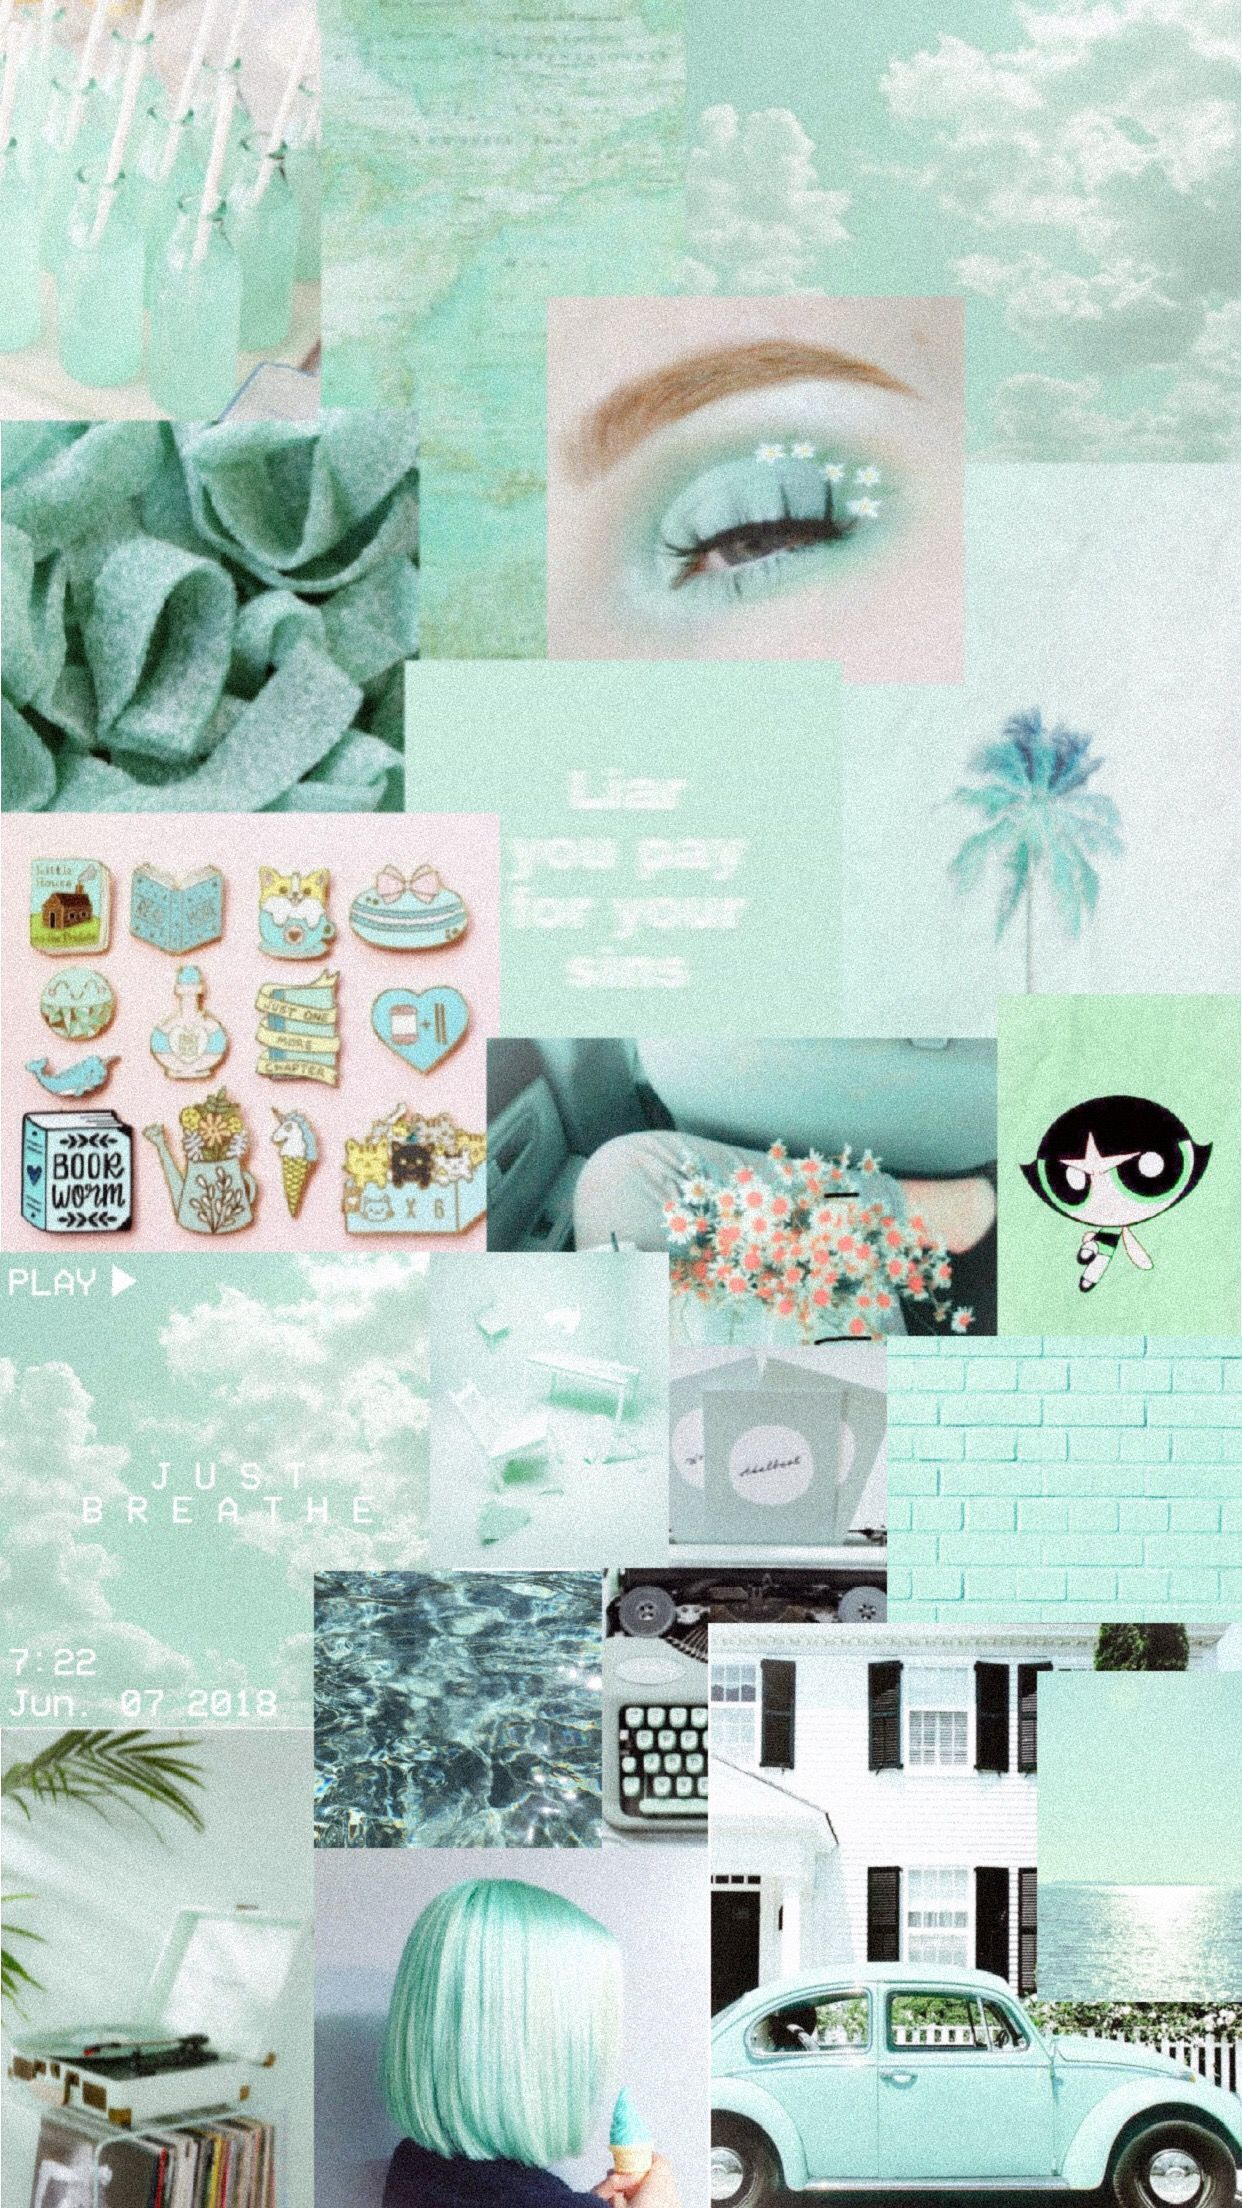 Aesthetic Mint Green Background In 2020 Iphone Wallpaper Tumblr Aesthetic Aesthetic Pastel Wallpaper Mint Green Aesthetic